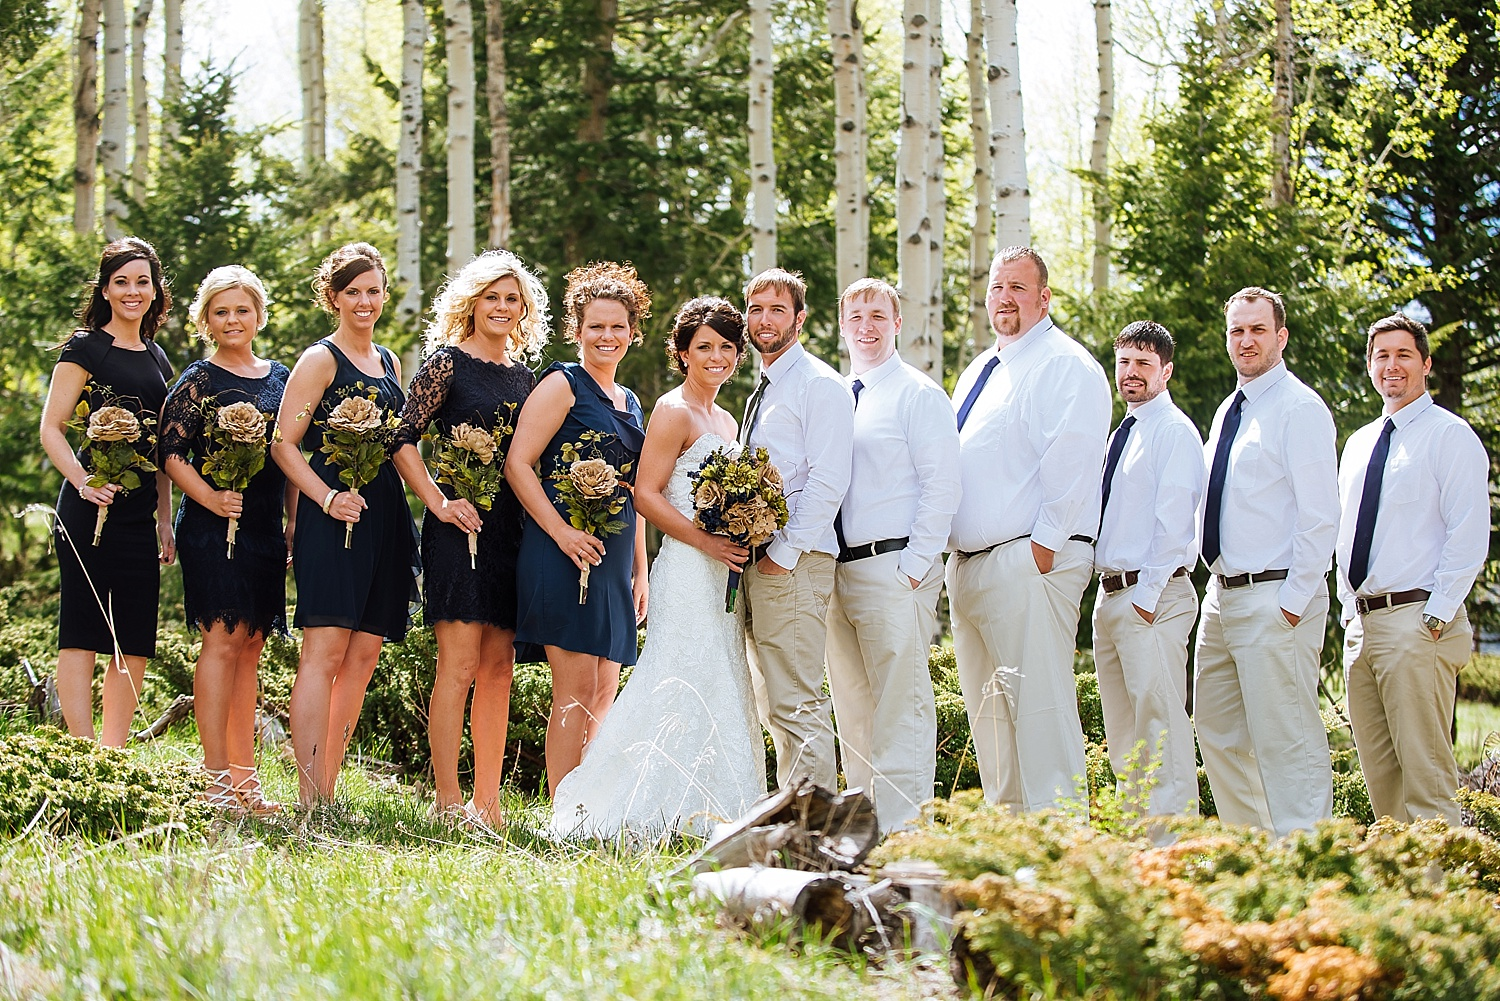 Estes Park is a beautiful wedding location - I mean, look at those trees and colors! Photo by Maddie Mae Photography